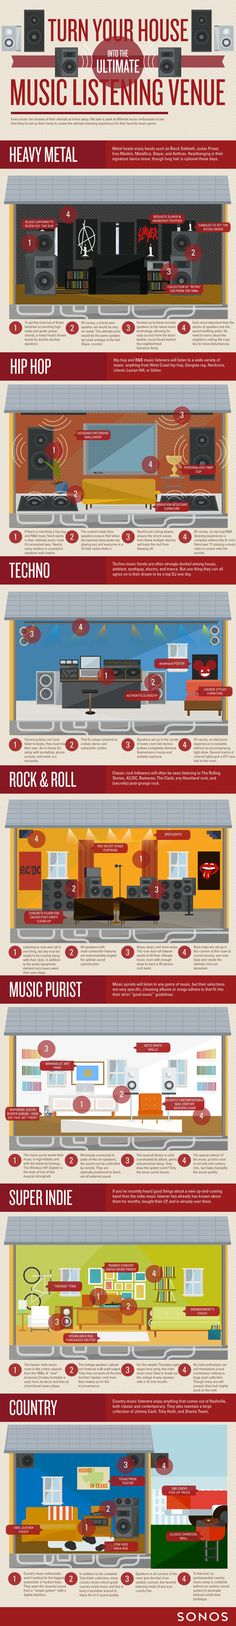 How to create a music room according to musical genre